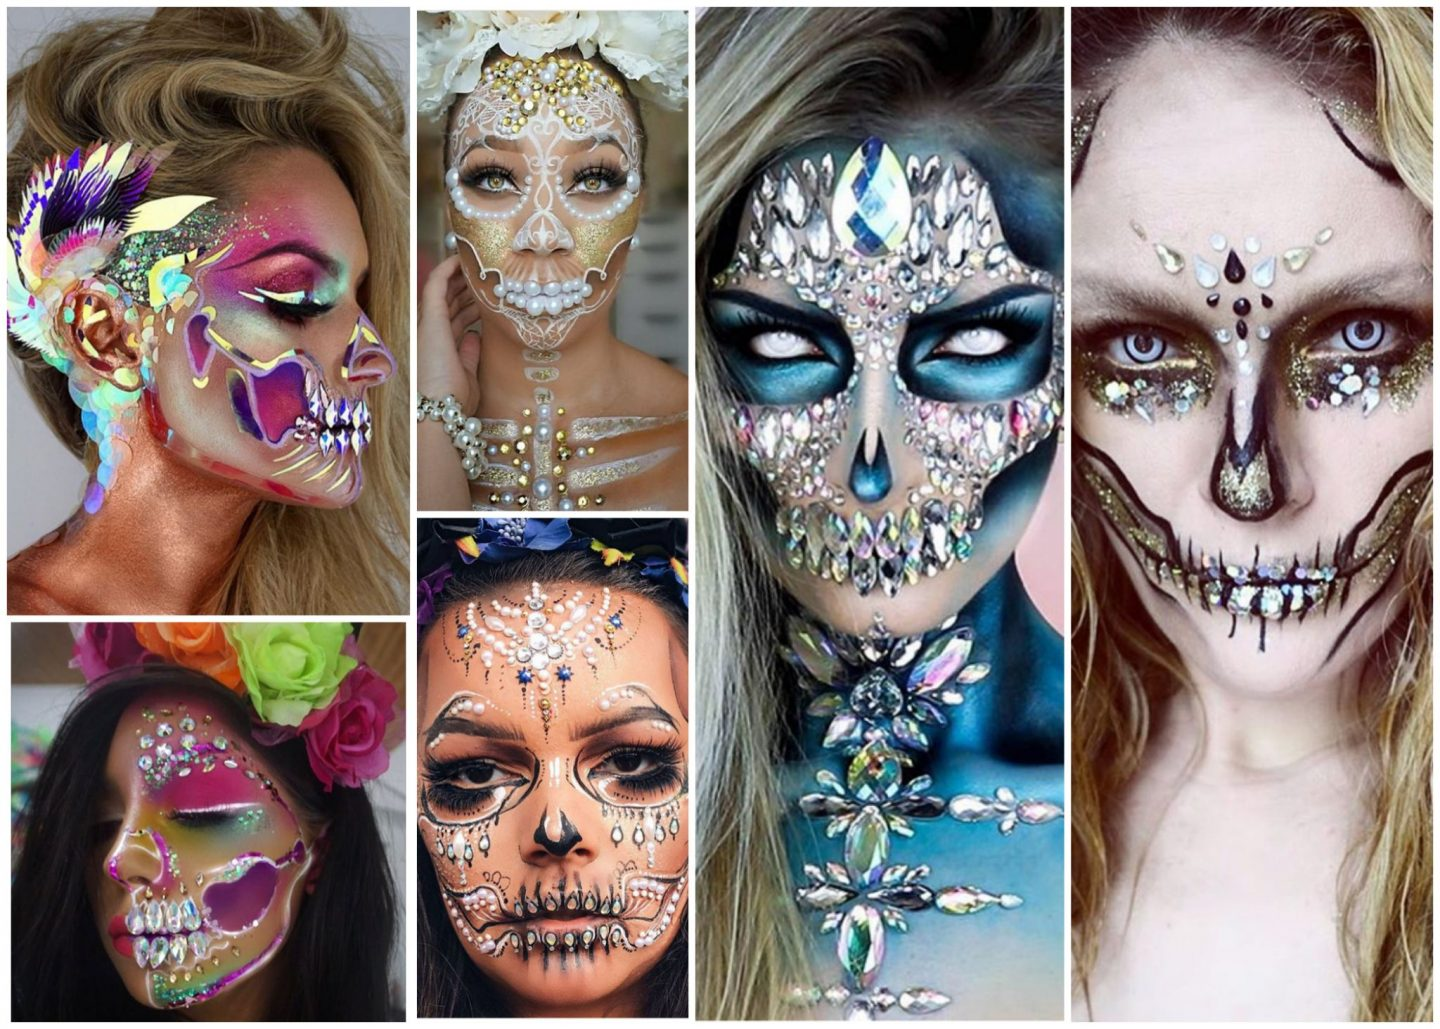 Glitter Sequin Gem, Day of the dead Candy Skull Halloween inspiration